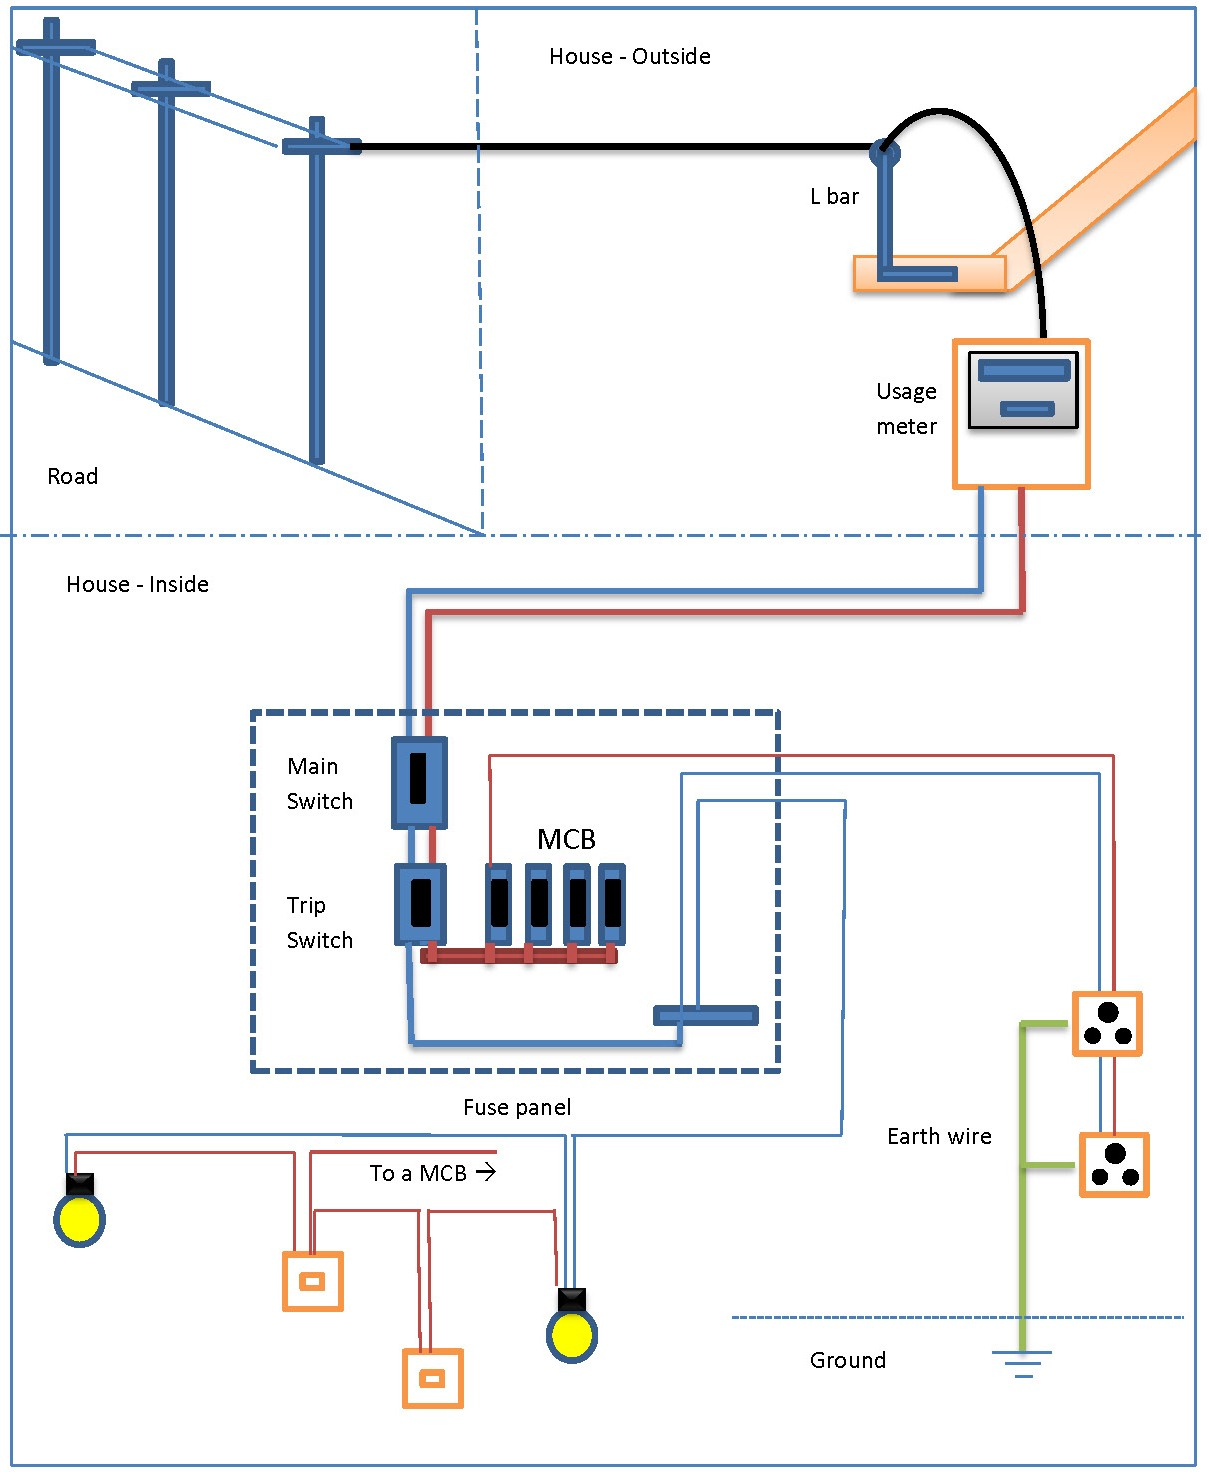 Doc3 senasum's blog house wiring diagram sri lanka house wiring diagrams at n-0.co